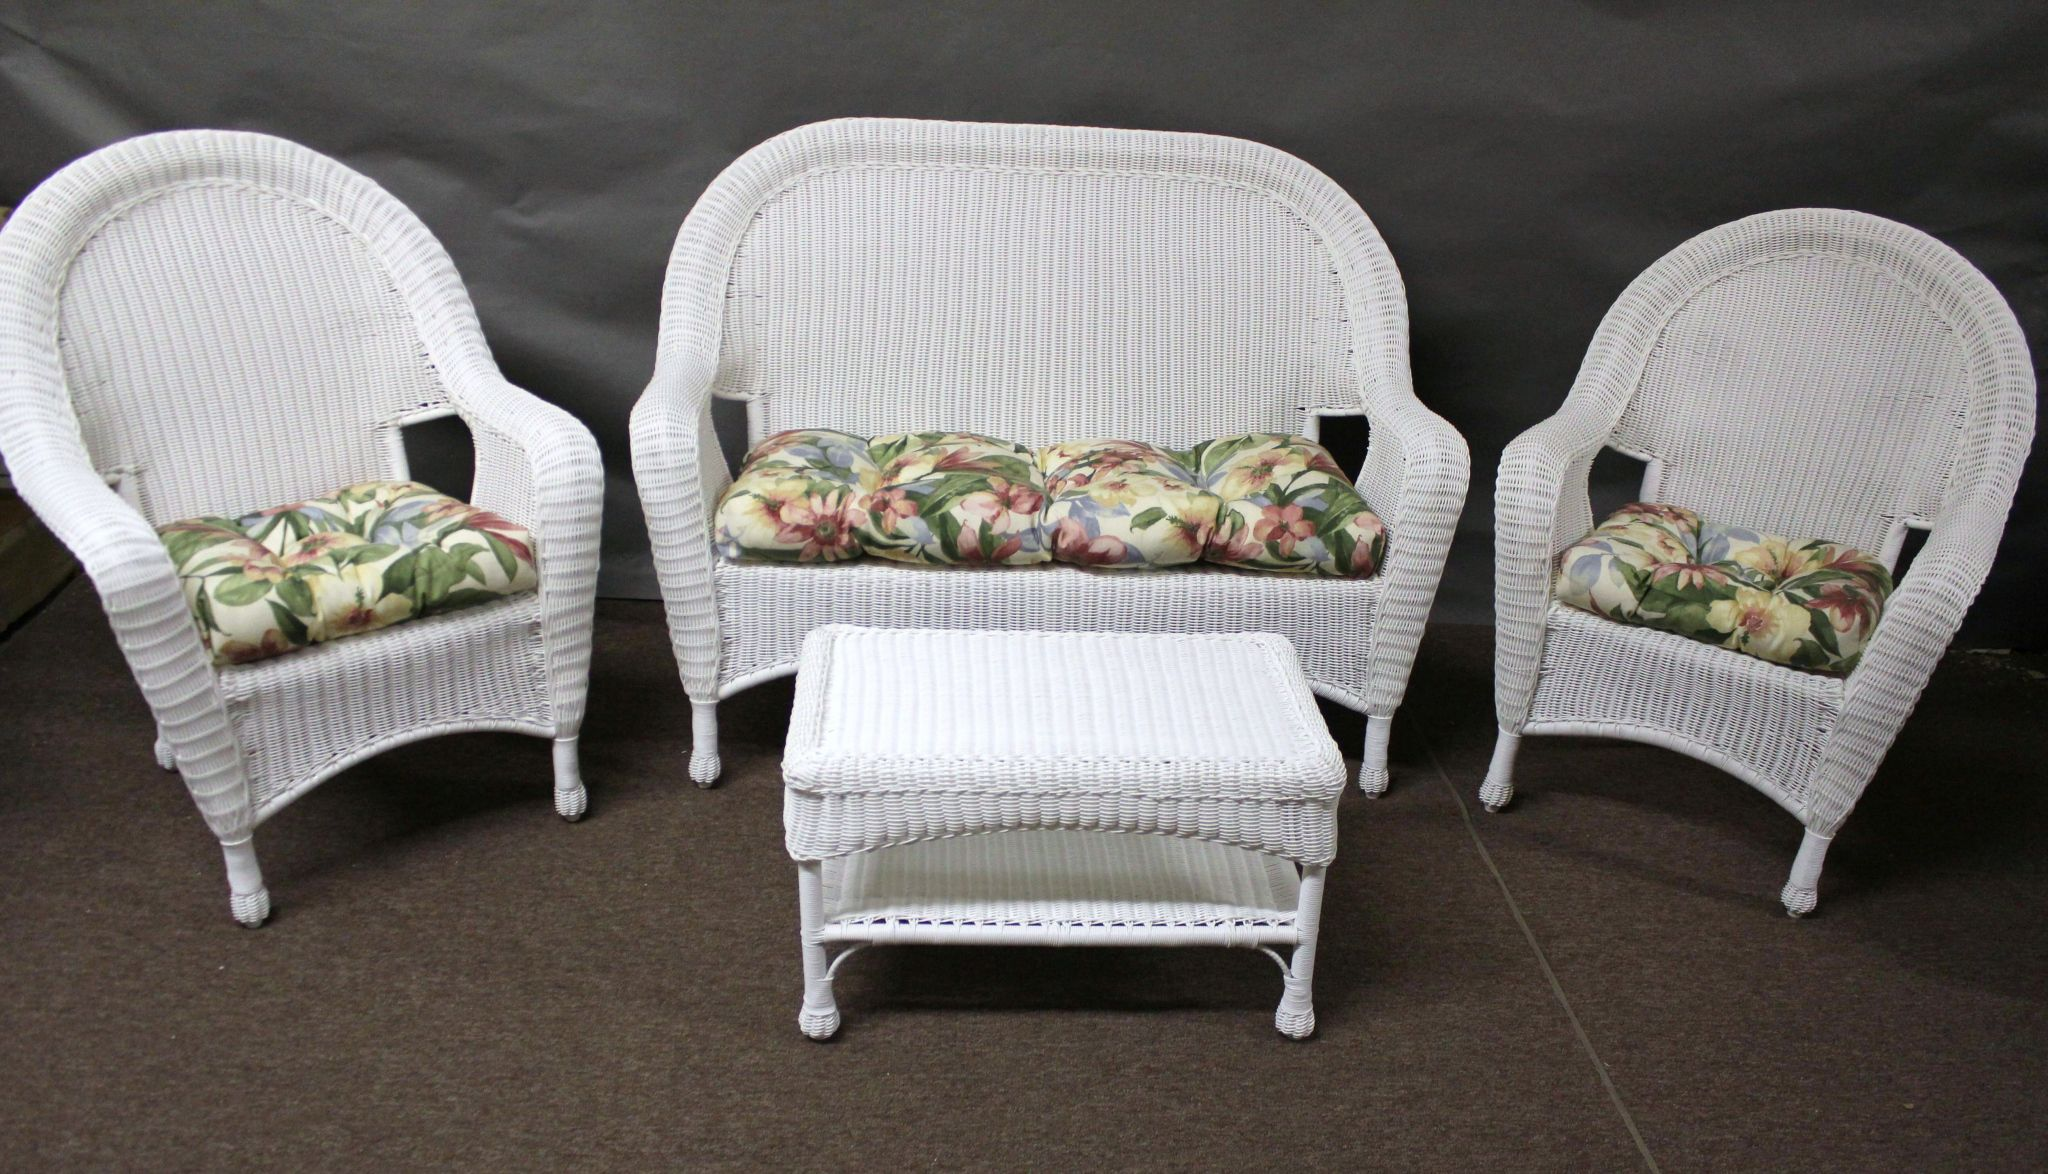 Outdoor Wicker Furniture Cushions Sets   Interior Paint Color Trends Check  More At Http:/